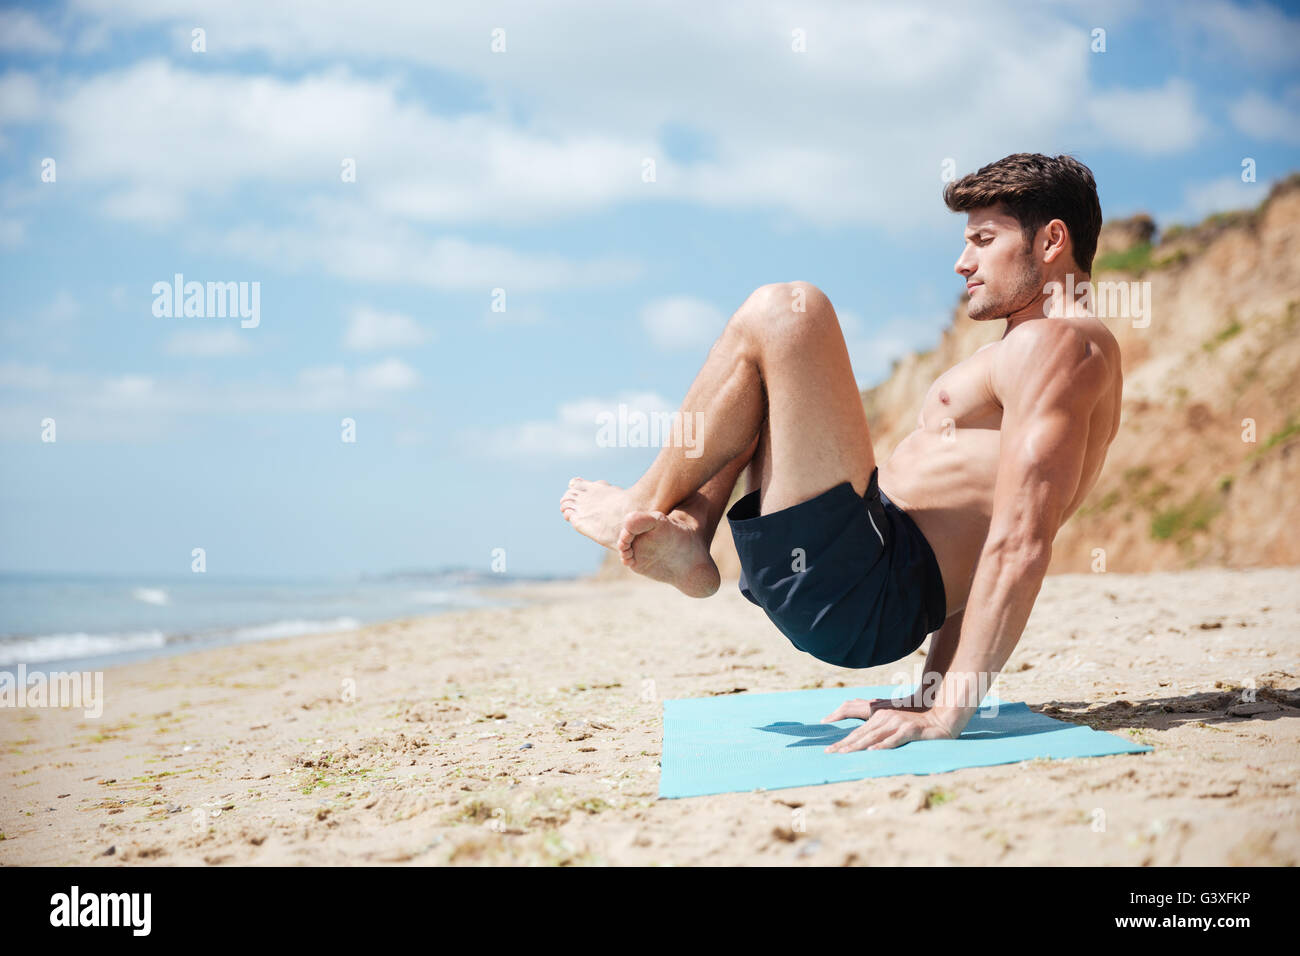 Man with eyes closed balancing on his hands and practicing yoga on the beach - Stock Image